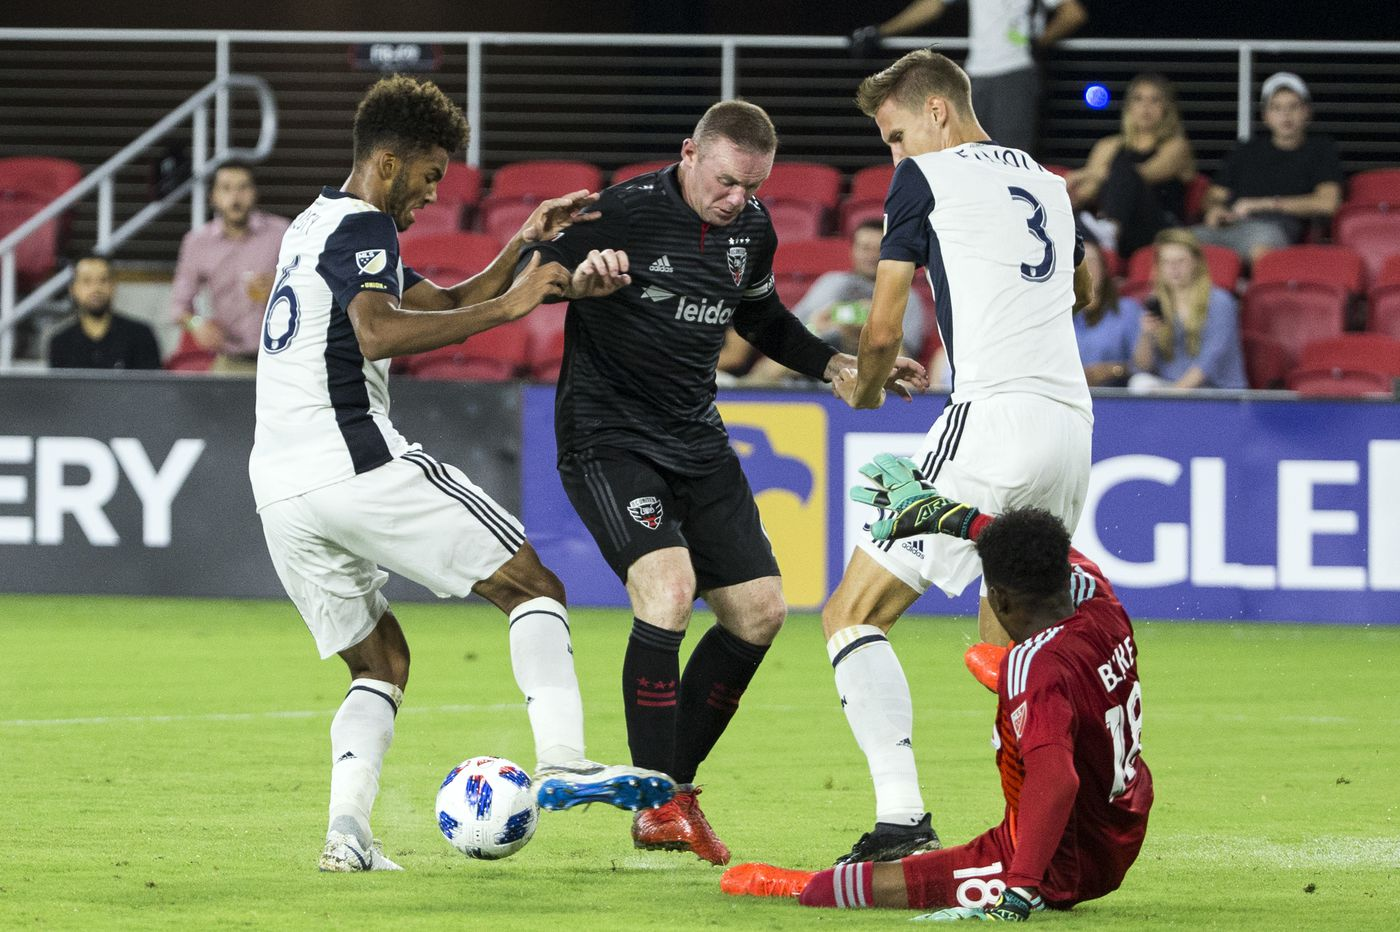 Union 2019 schedule announced: Wayne Rooney making first visit, just one national TV game